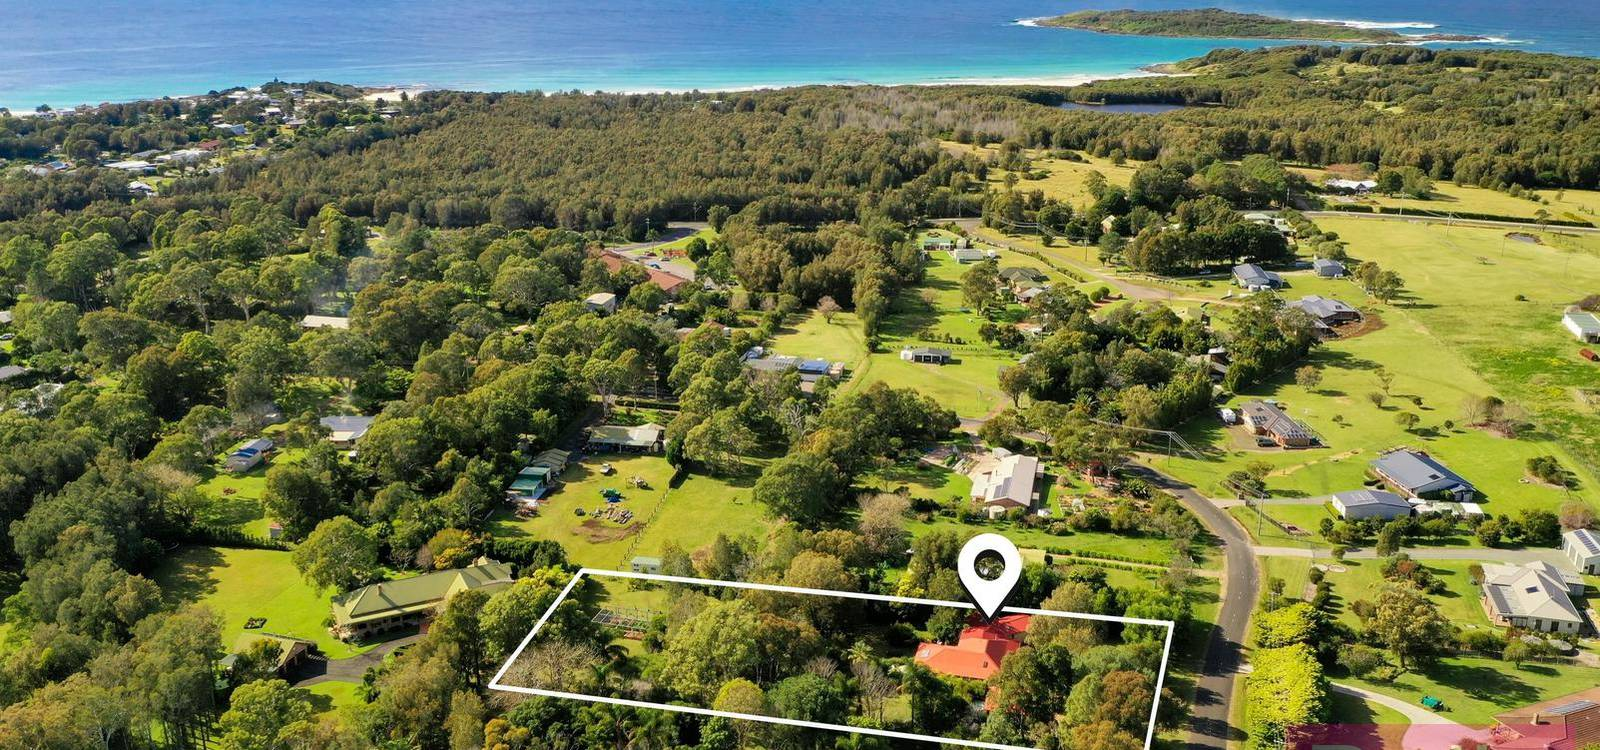 39 Voyager Cresent BAWLEY POINT, NSW 2539 - photo 1